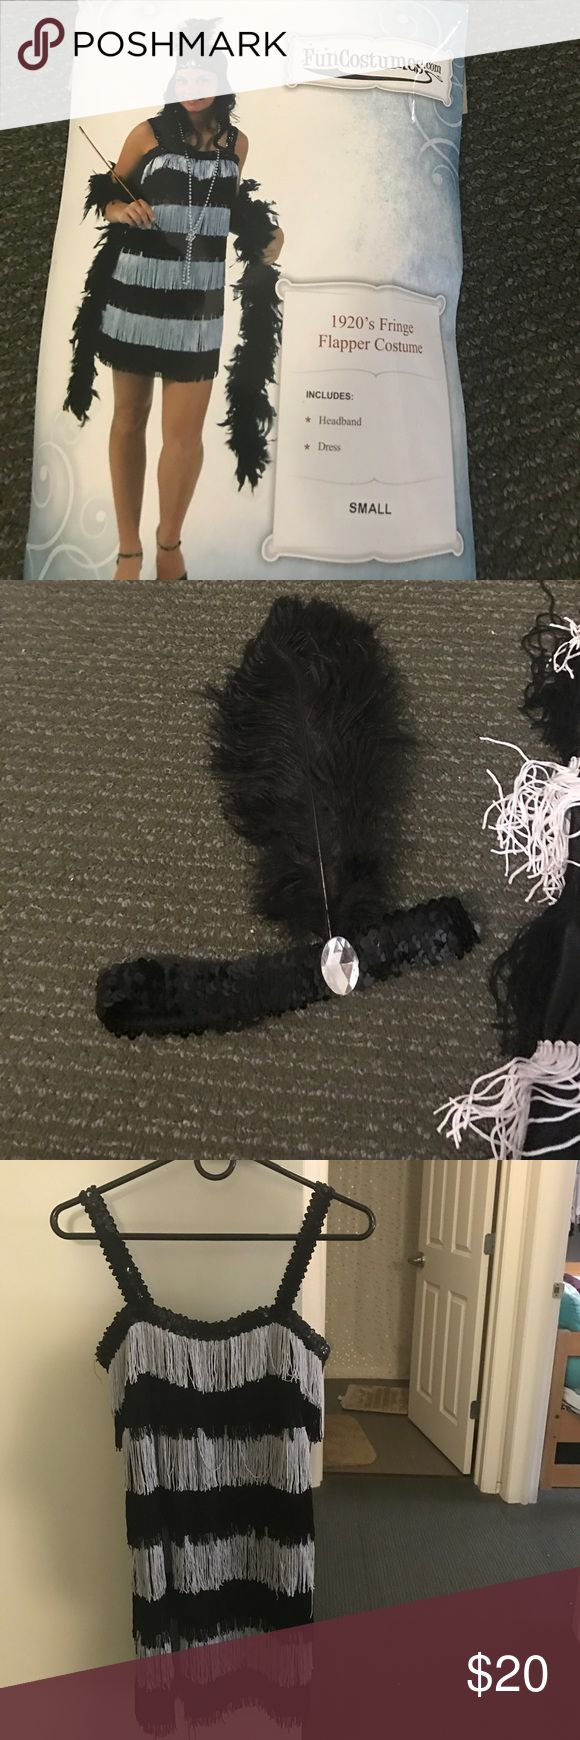 Flapper girl costume Dress and headband flapper girl costume size small. Used once for a 20s themed dance and dress and headband in very good condition. Perfect for Halloween costume Other